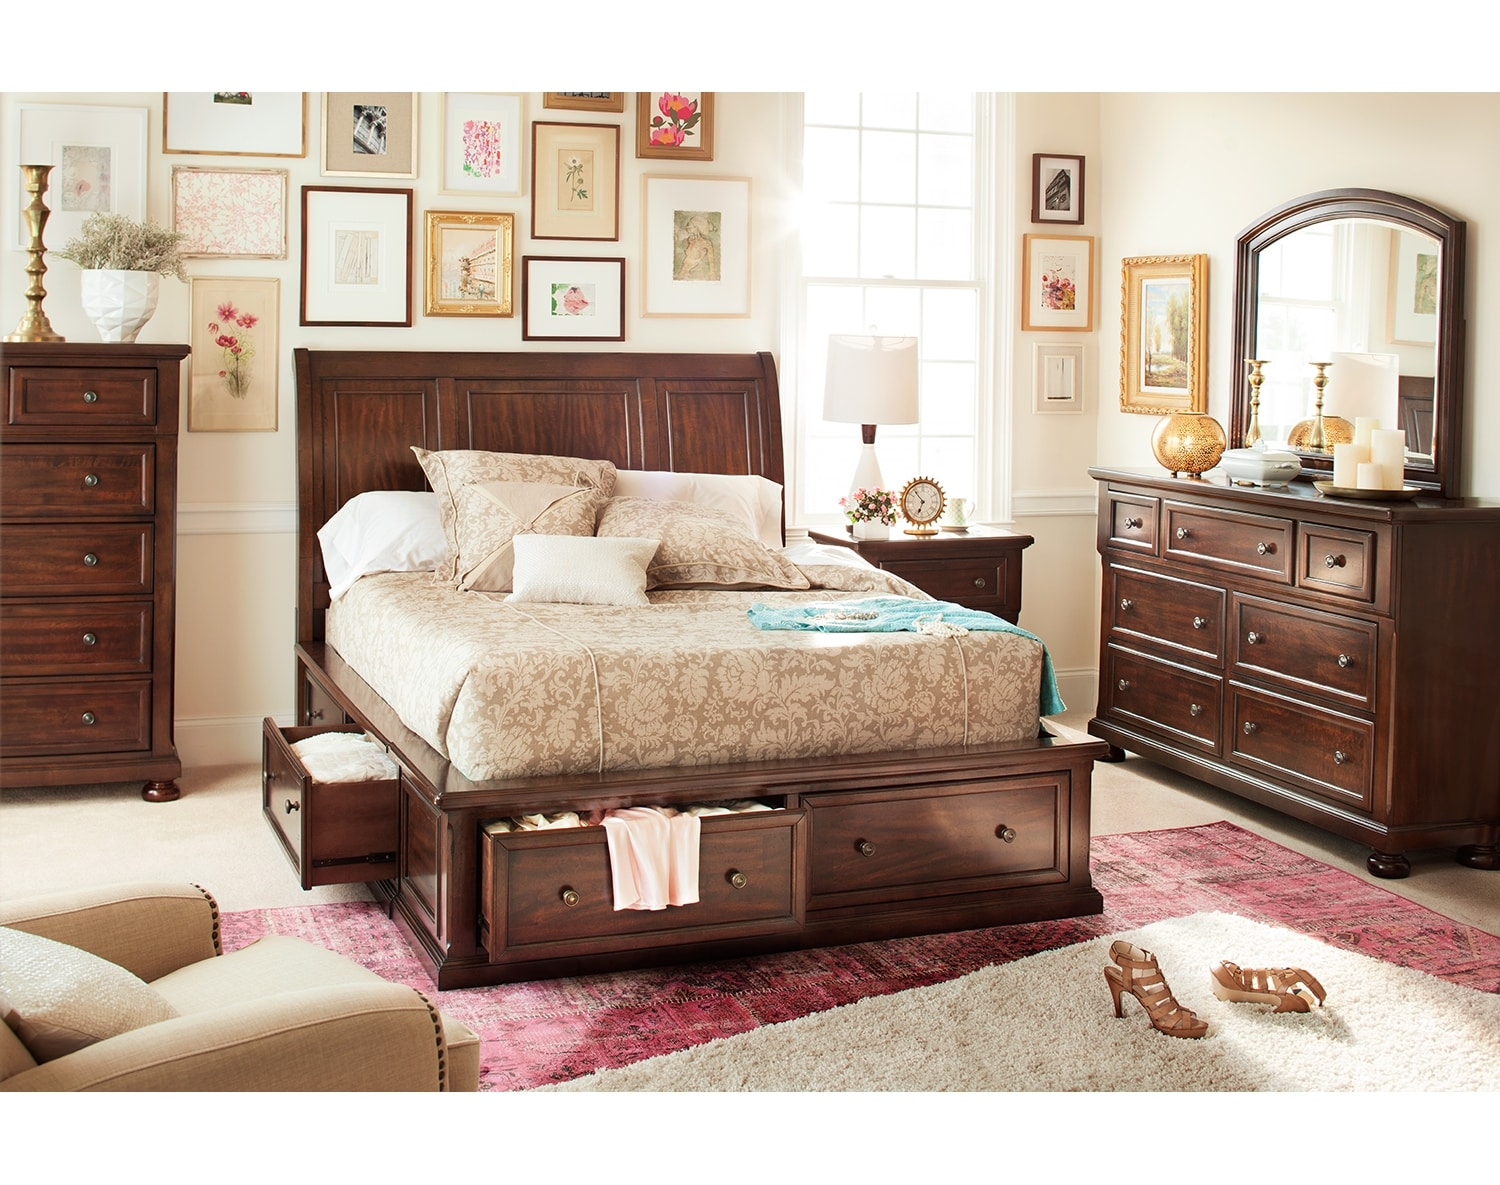 The Hanover Storage Bedroom Collection - Cherry  sc 1 st  American Signature Furniture & The Hanover Storage Bedroom Collection - Cherry | American Signature ...